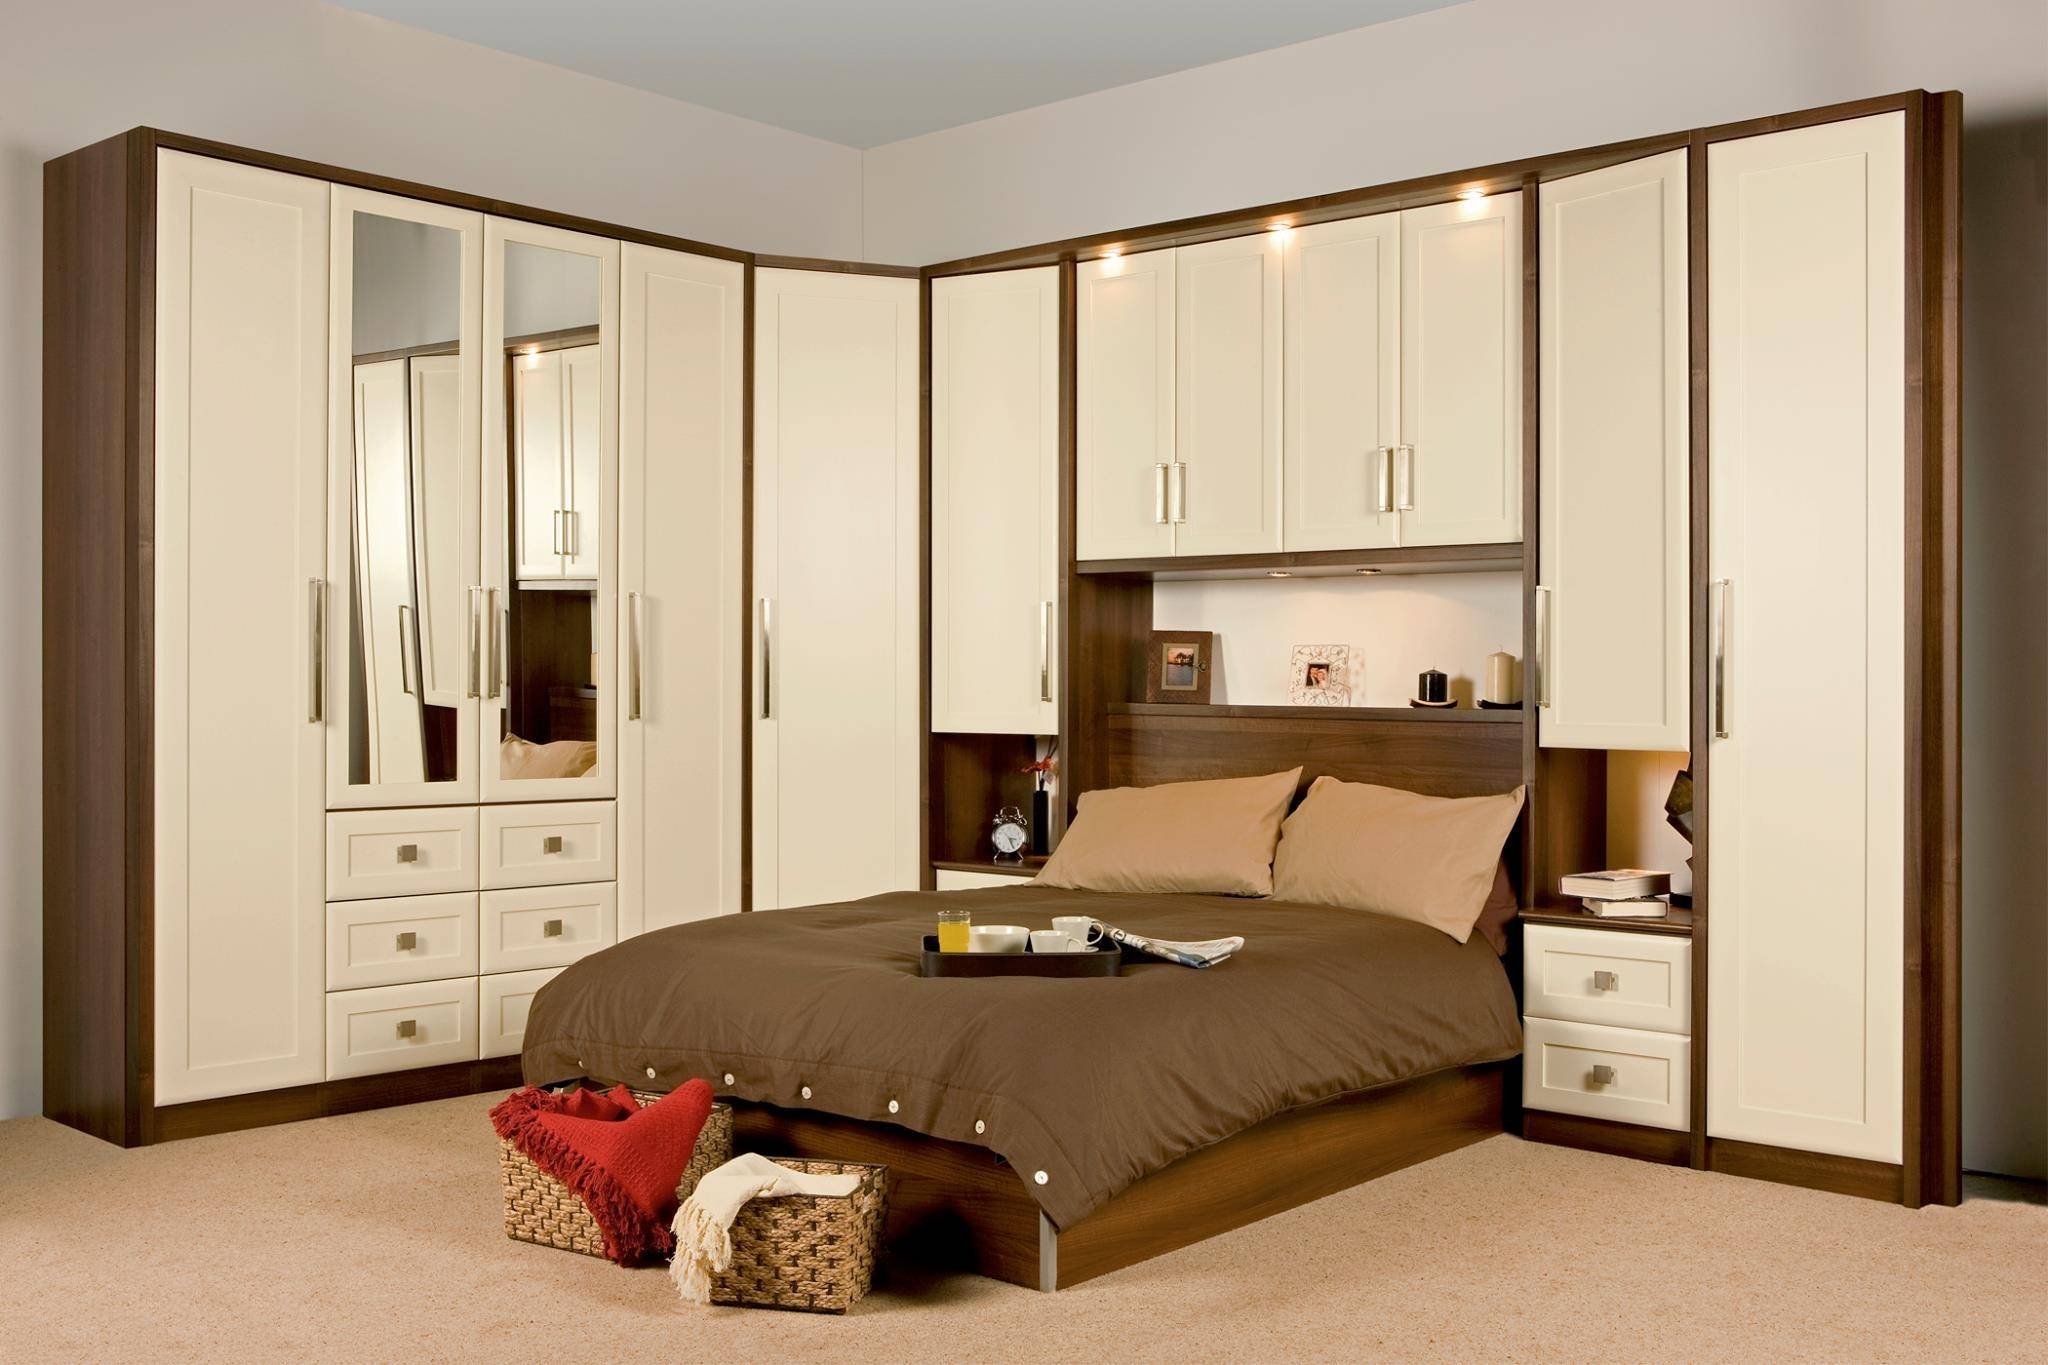 Bedroom Furniture Wardrobes ~ Piazzesi with regard to Over Bed Wardrobes Sets (Image 8 of 15)